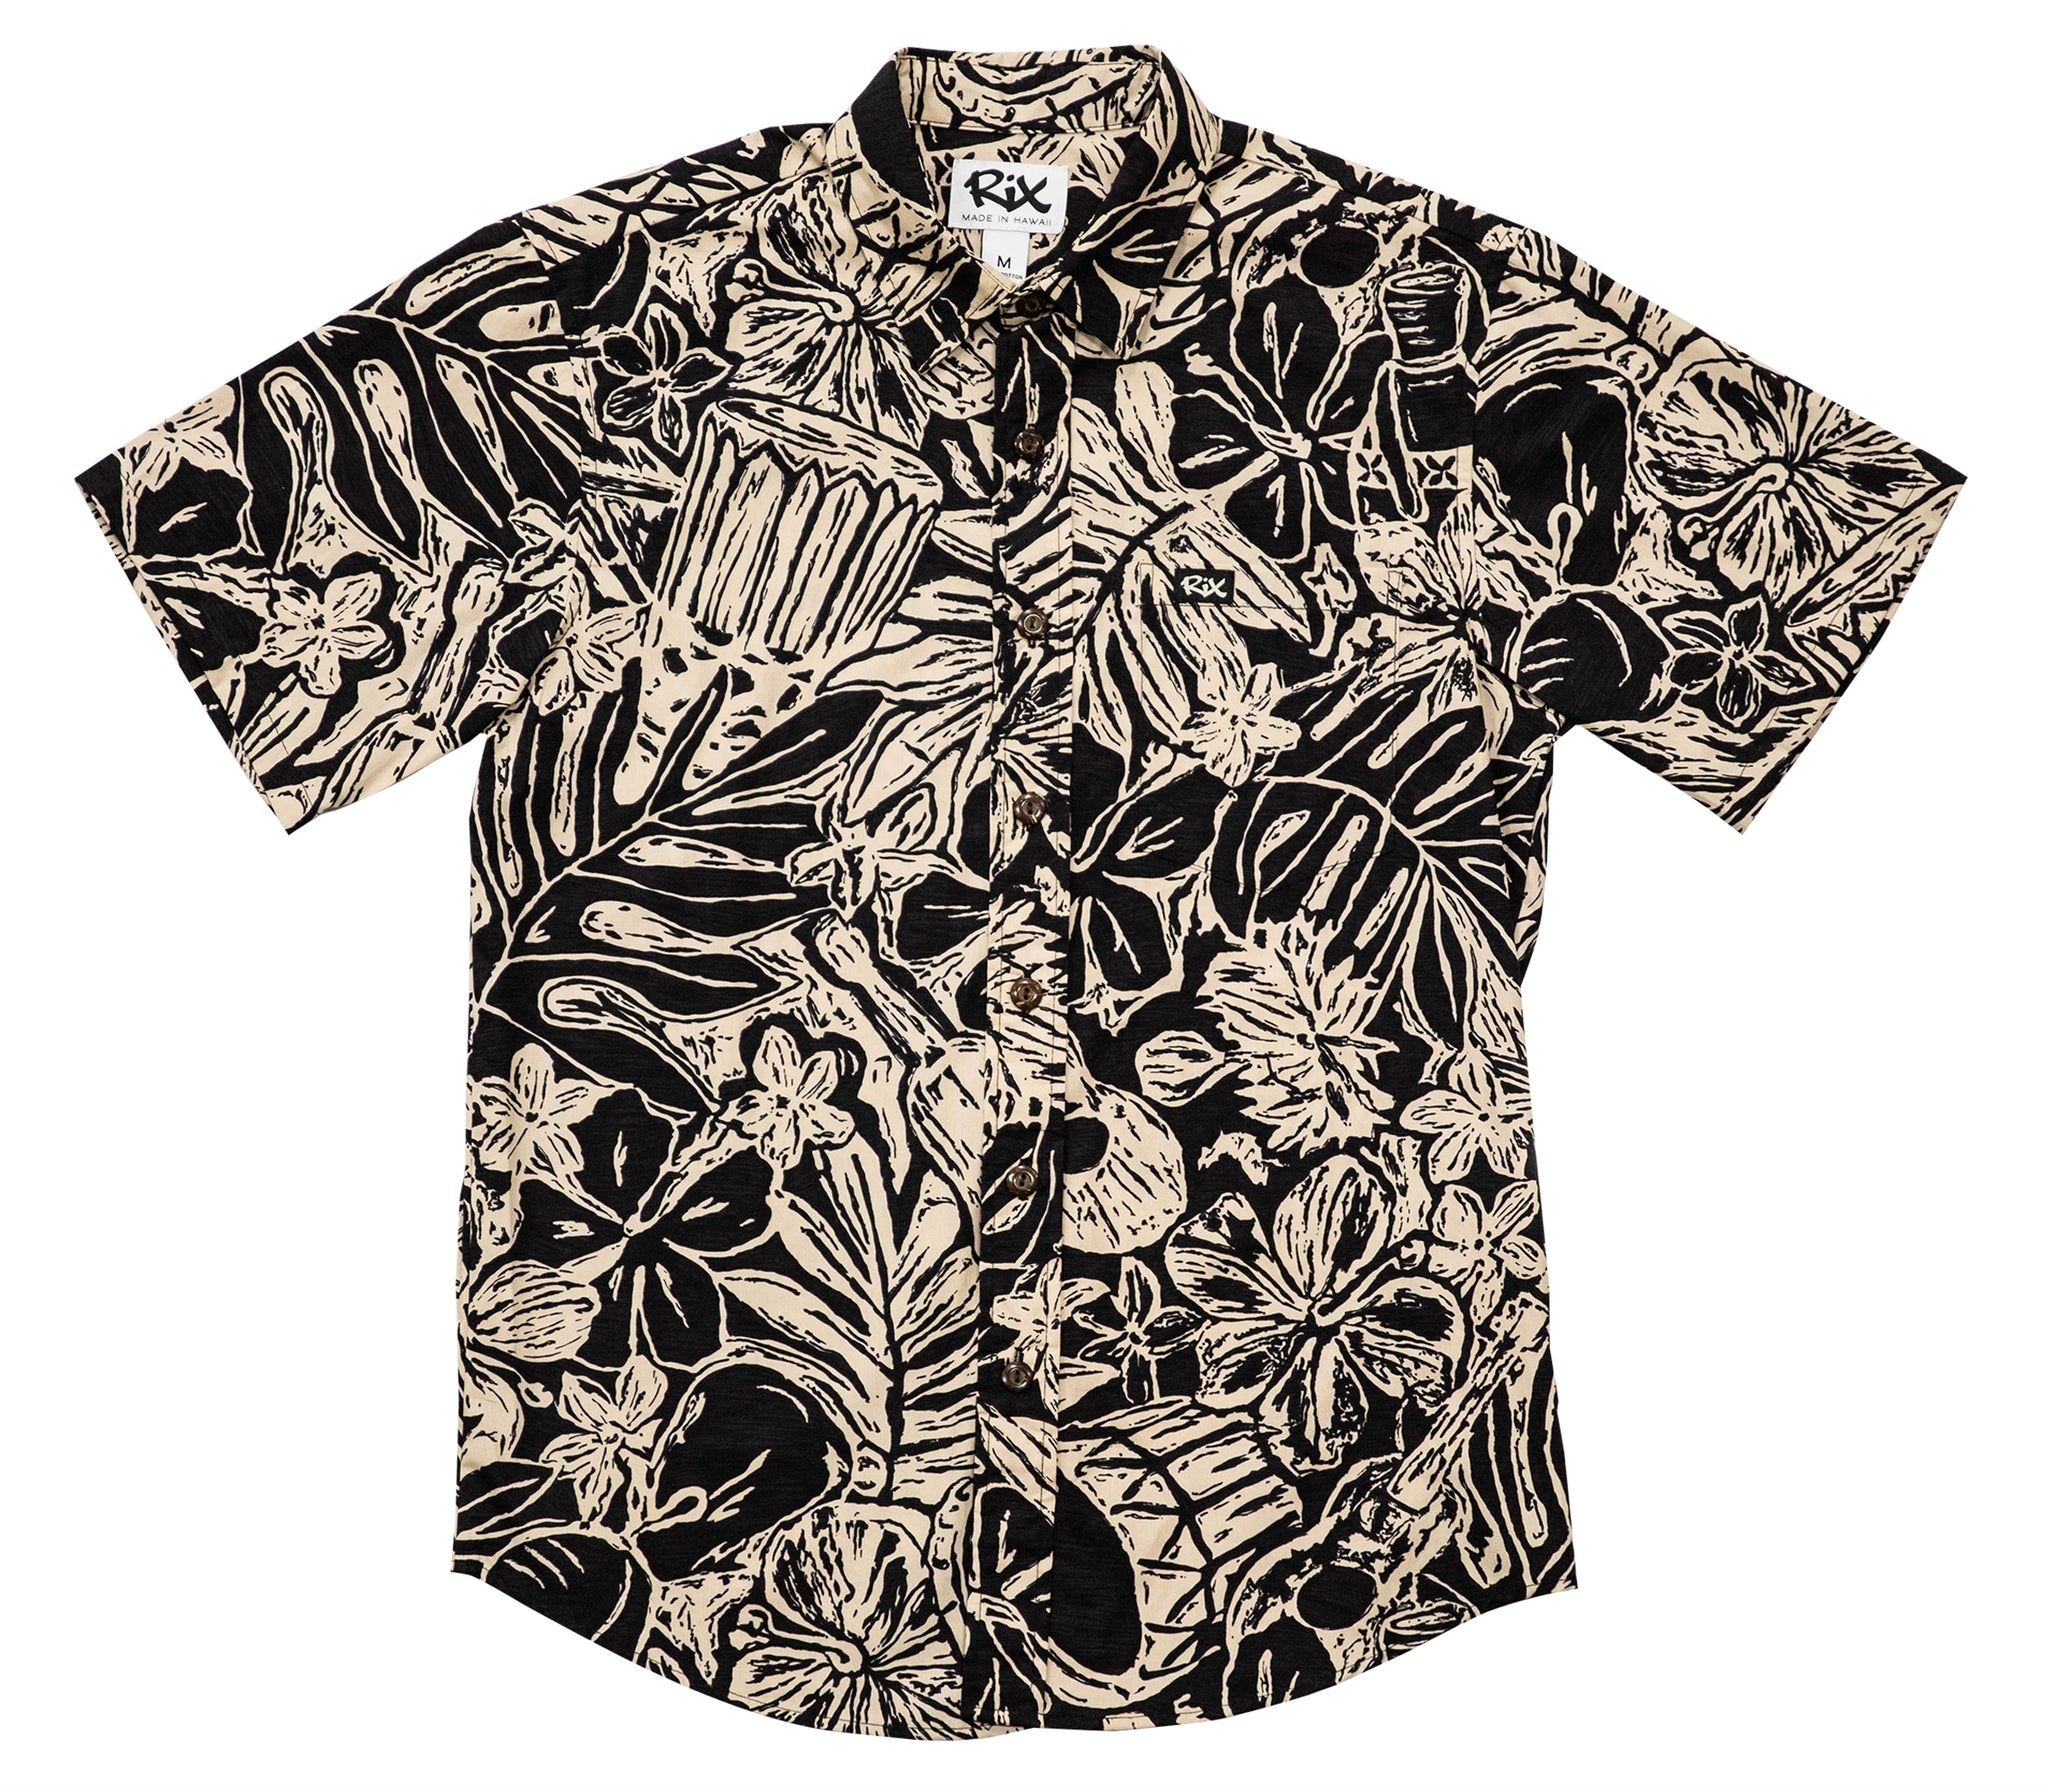 01e98406ba15 Rix Island Wear - The Bold Look In Hawaiian Wear